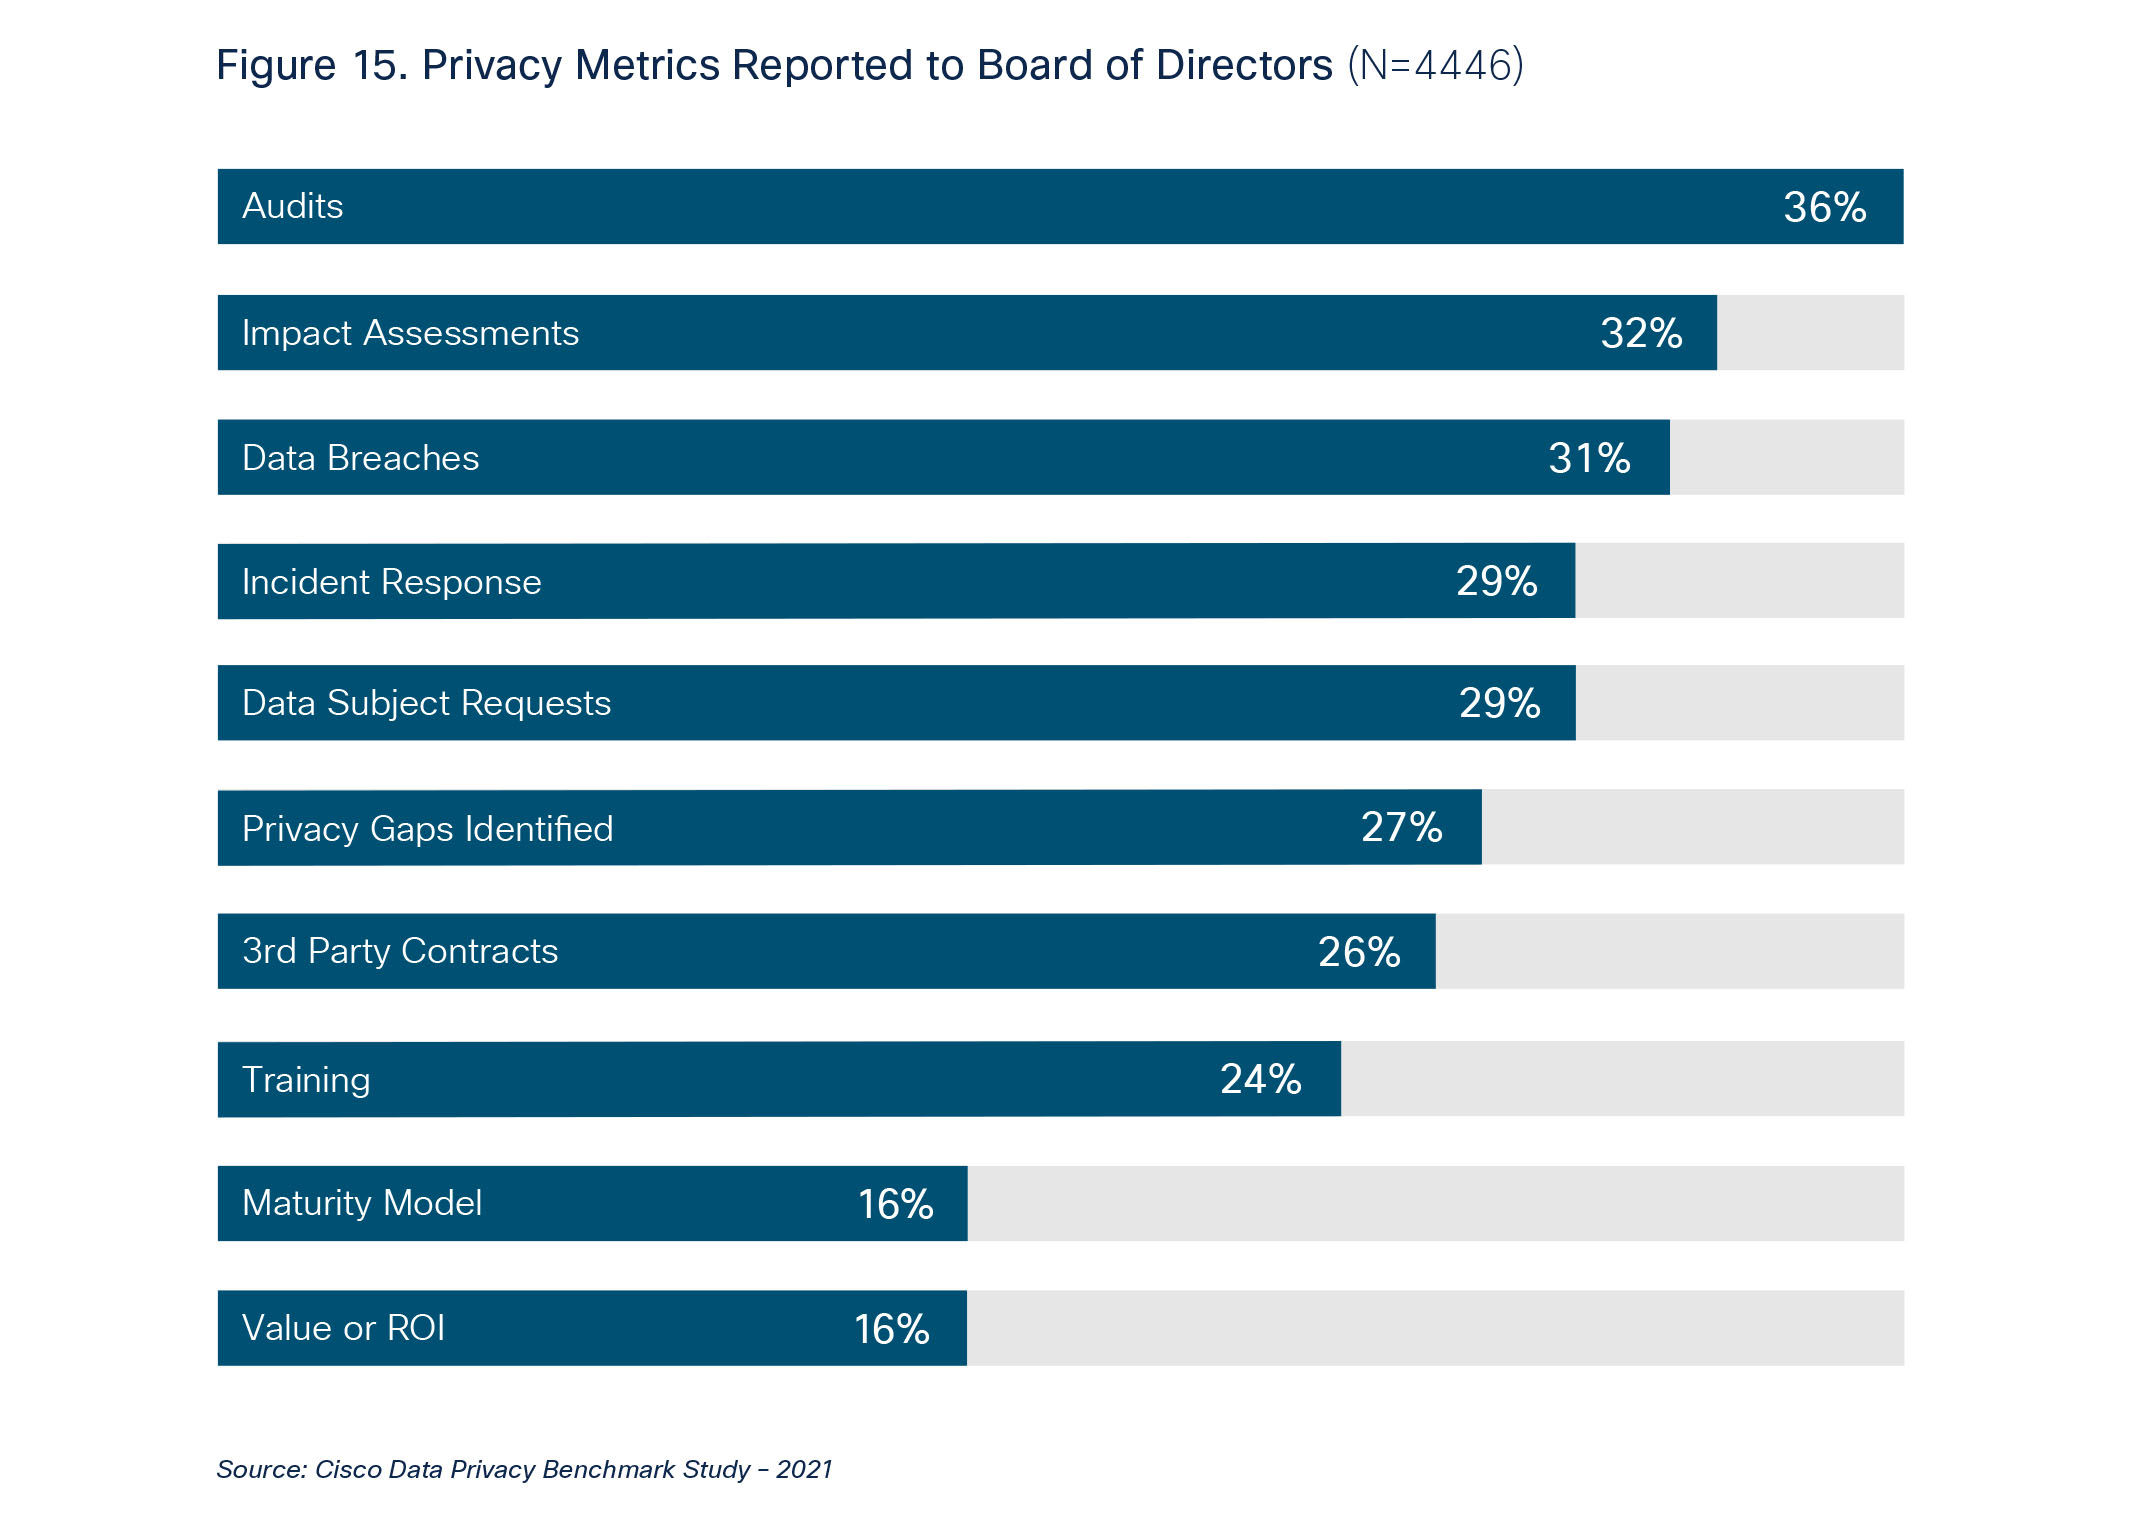 Audits, impact assessments, and data breaches were the three leading privacy metrics reported in the past year.